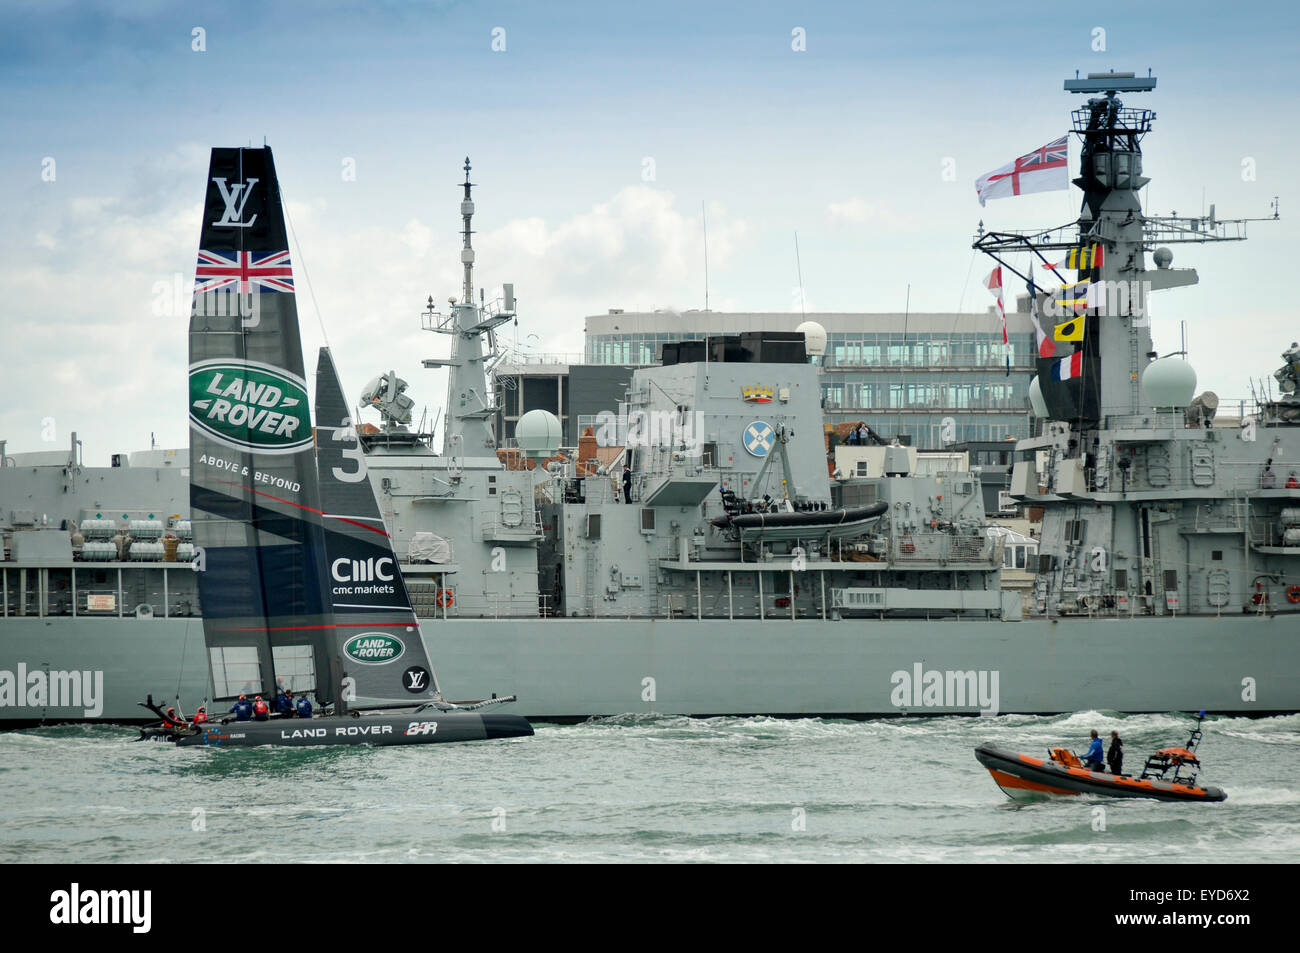 America's Cup World Series Portsmouth. Sir Ben Ainslie passing HMS St Albans - Stock Image